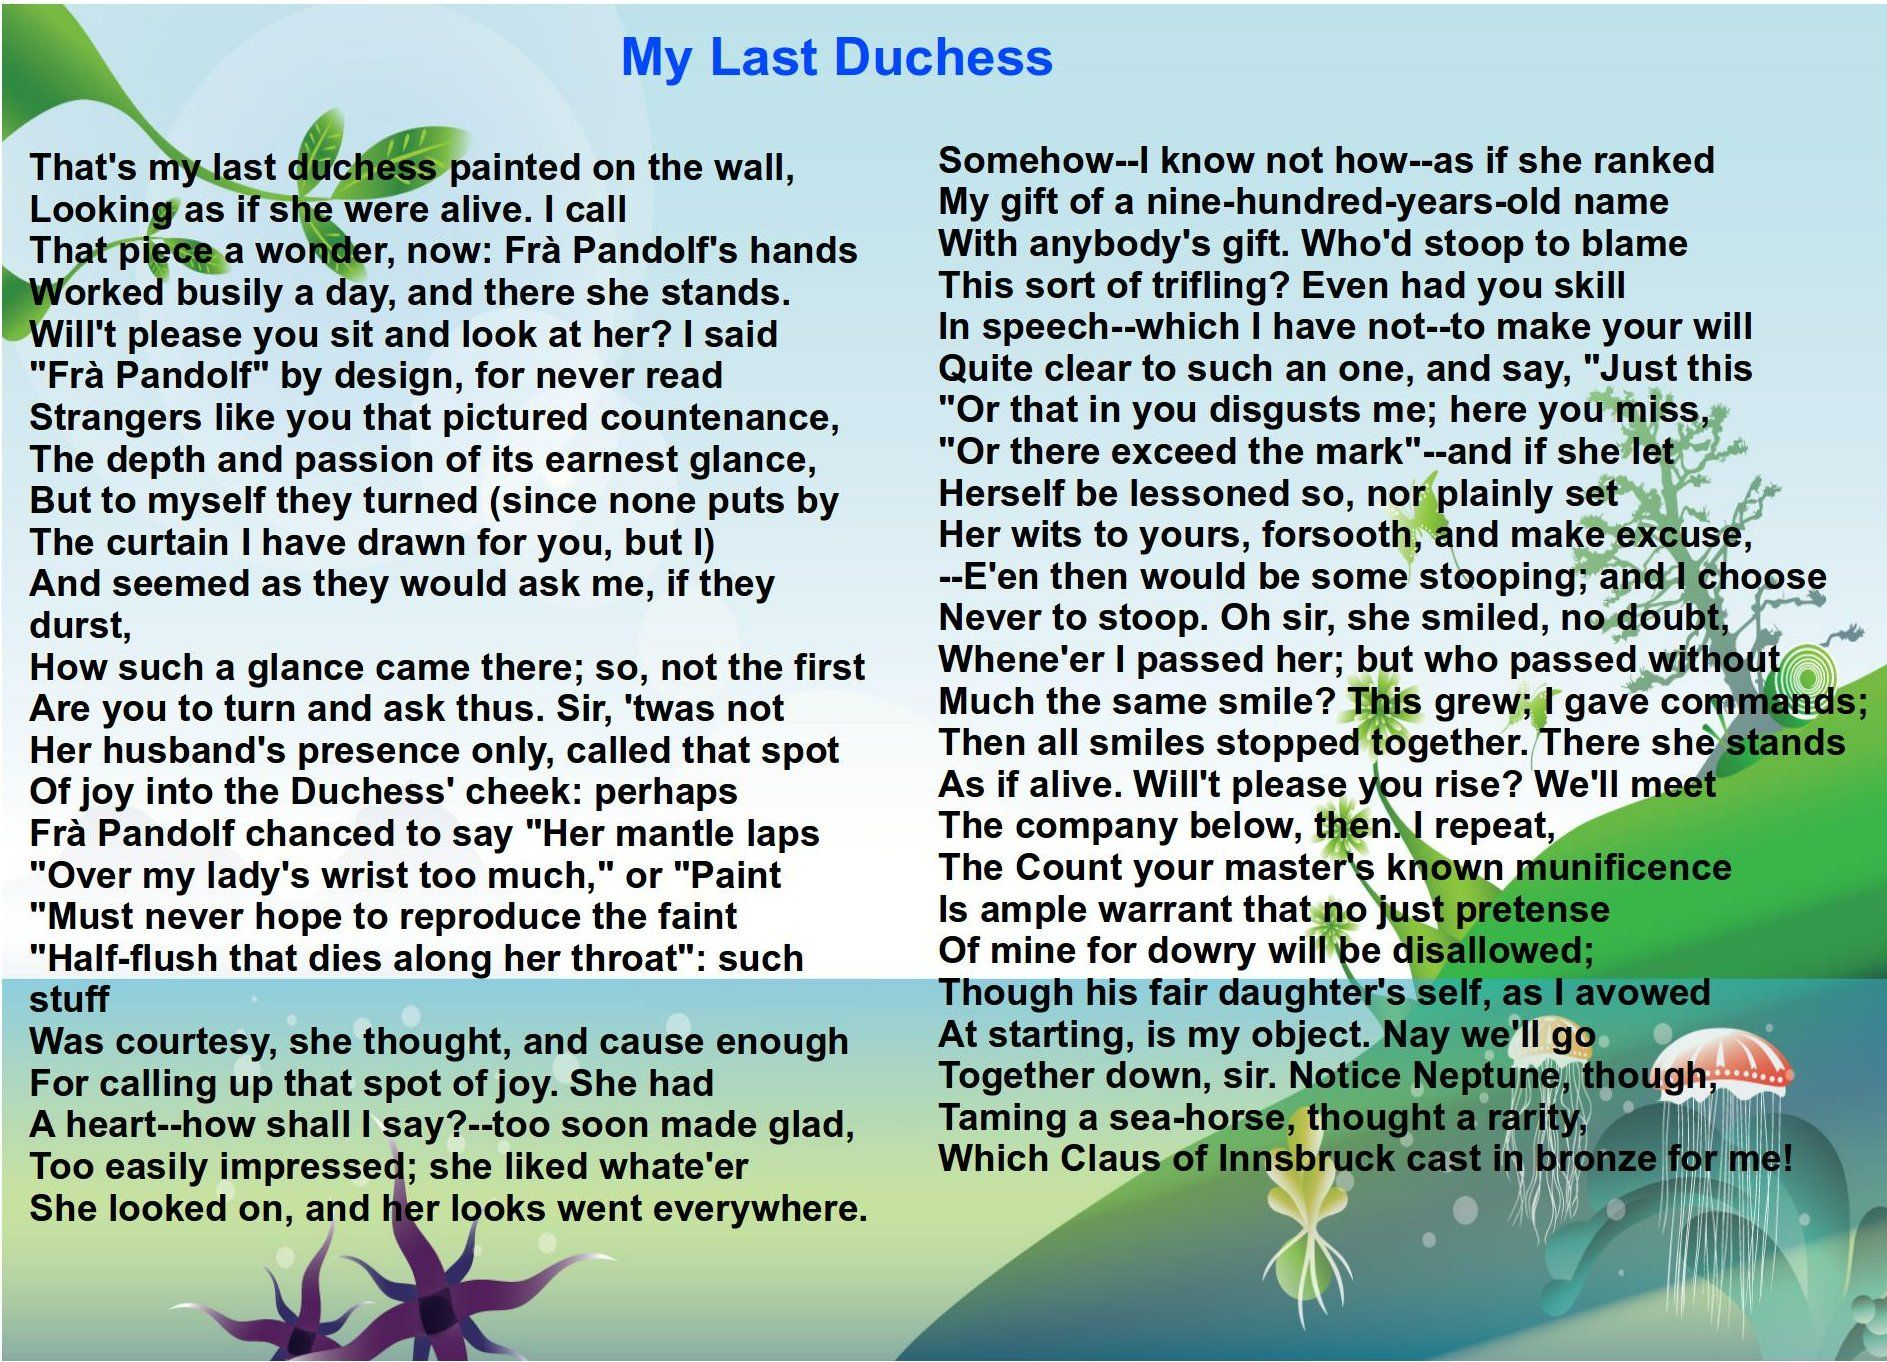 my last duchess is a poem by robert browning frequently my last duchess is a poem by robert browning frequently anthologized as an example